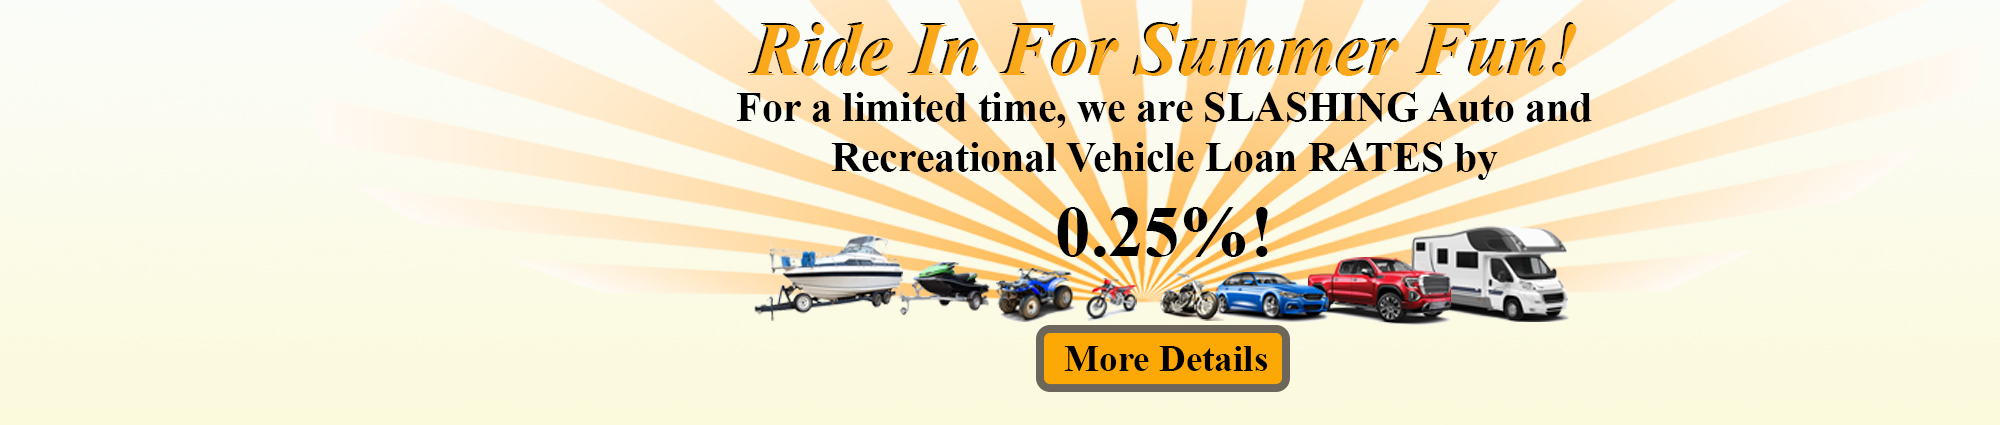 Ride in for summer fun! For a limited time, we are slashing auto and recreational vehicle loan rates by a quarter of a percent. Click for more details.